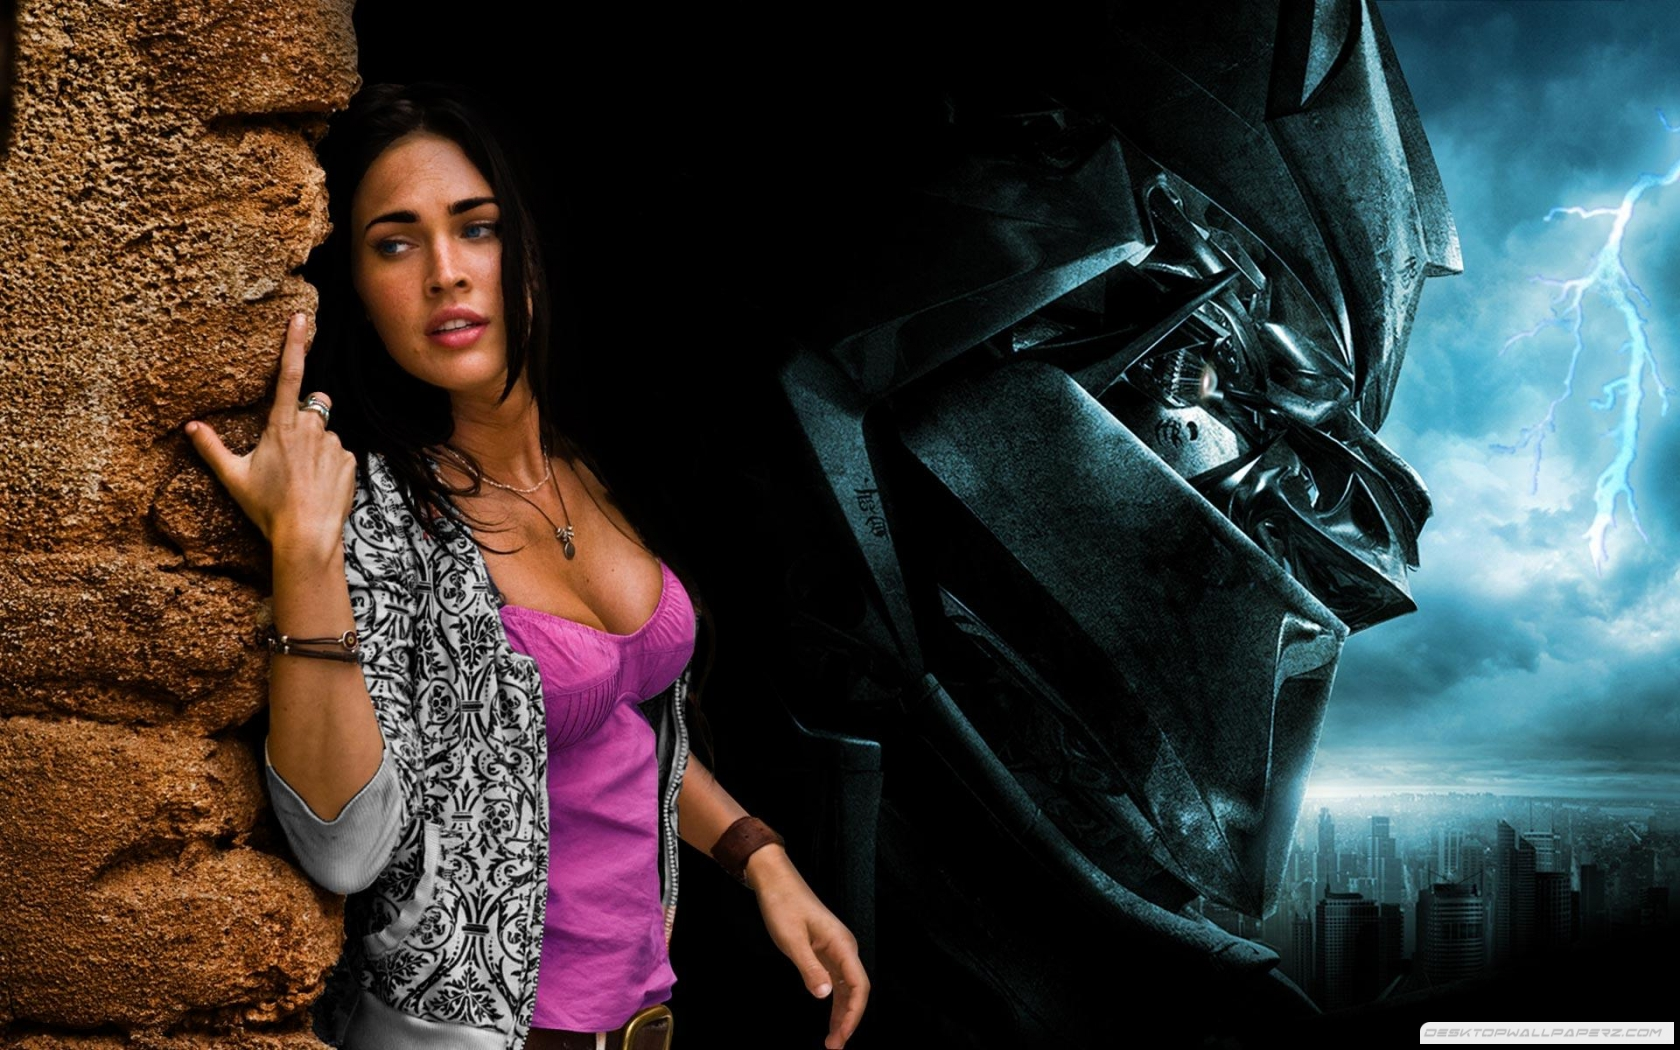 Megan Fox Transformers 16801050 66160 HD Wallpaper Res 1680x1050 1680x1050